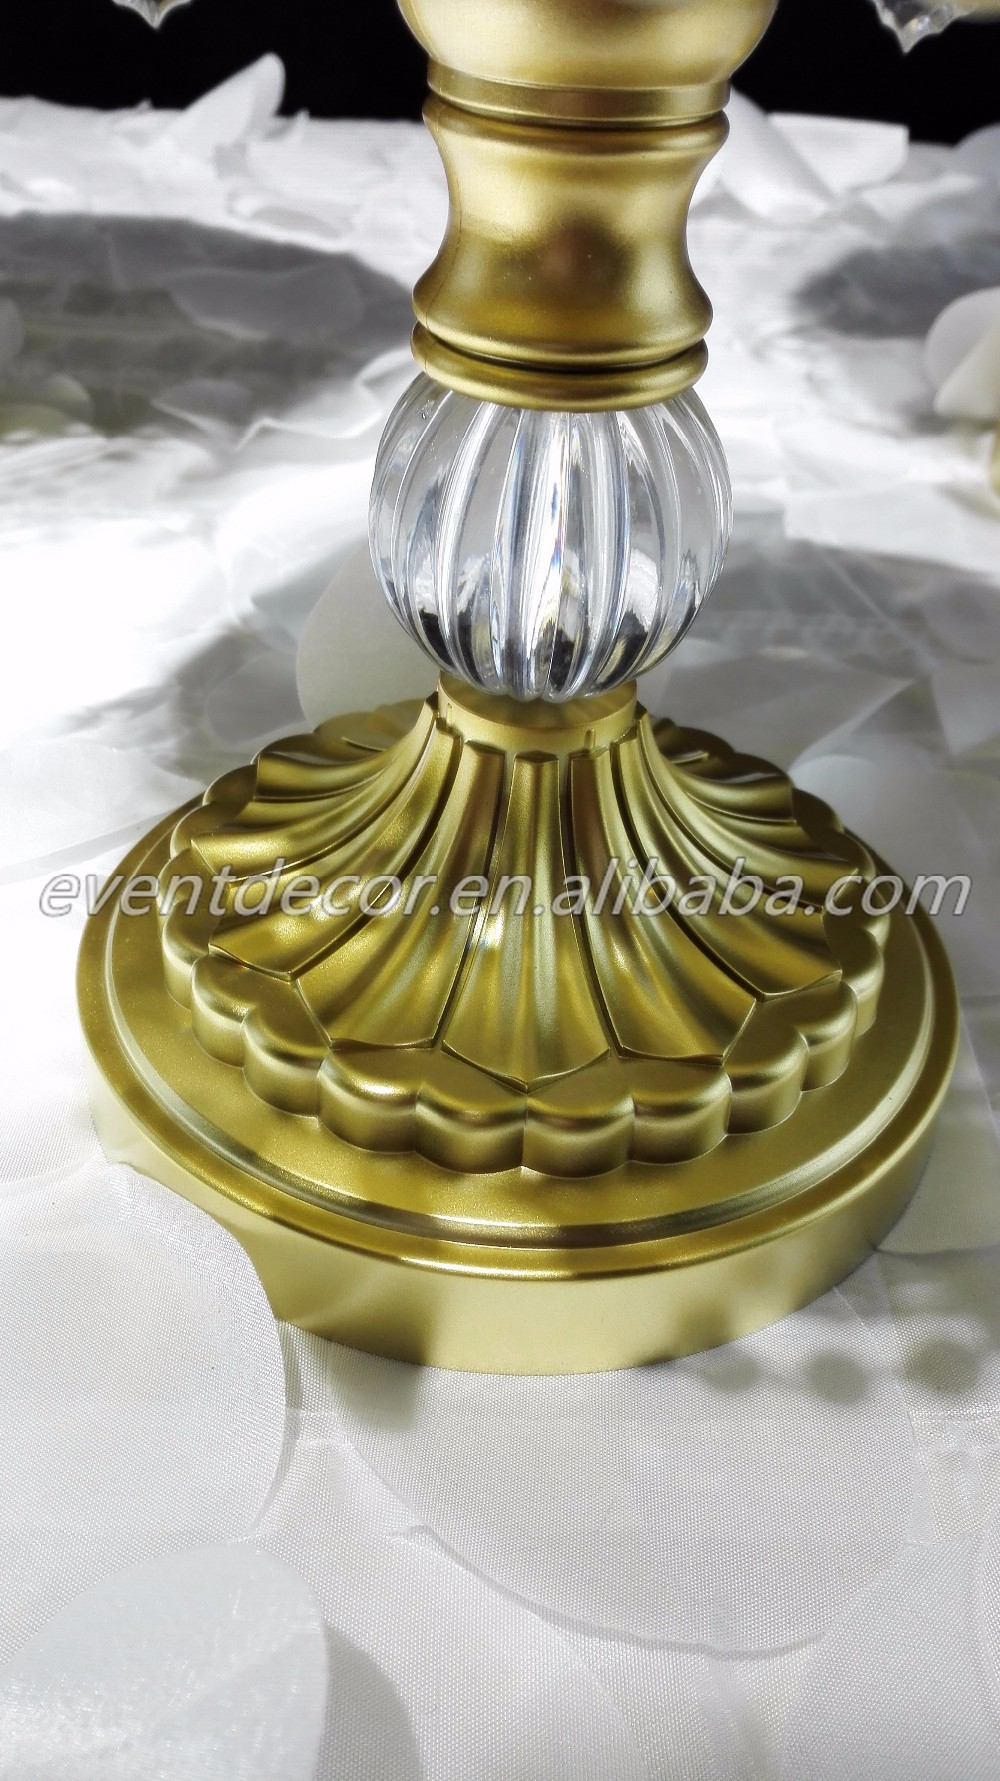 Trade Cake Stands : Metal golden party dessert cupcake display size wedding